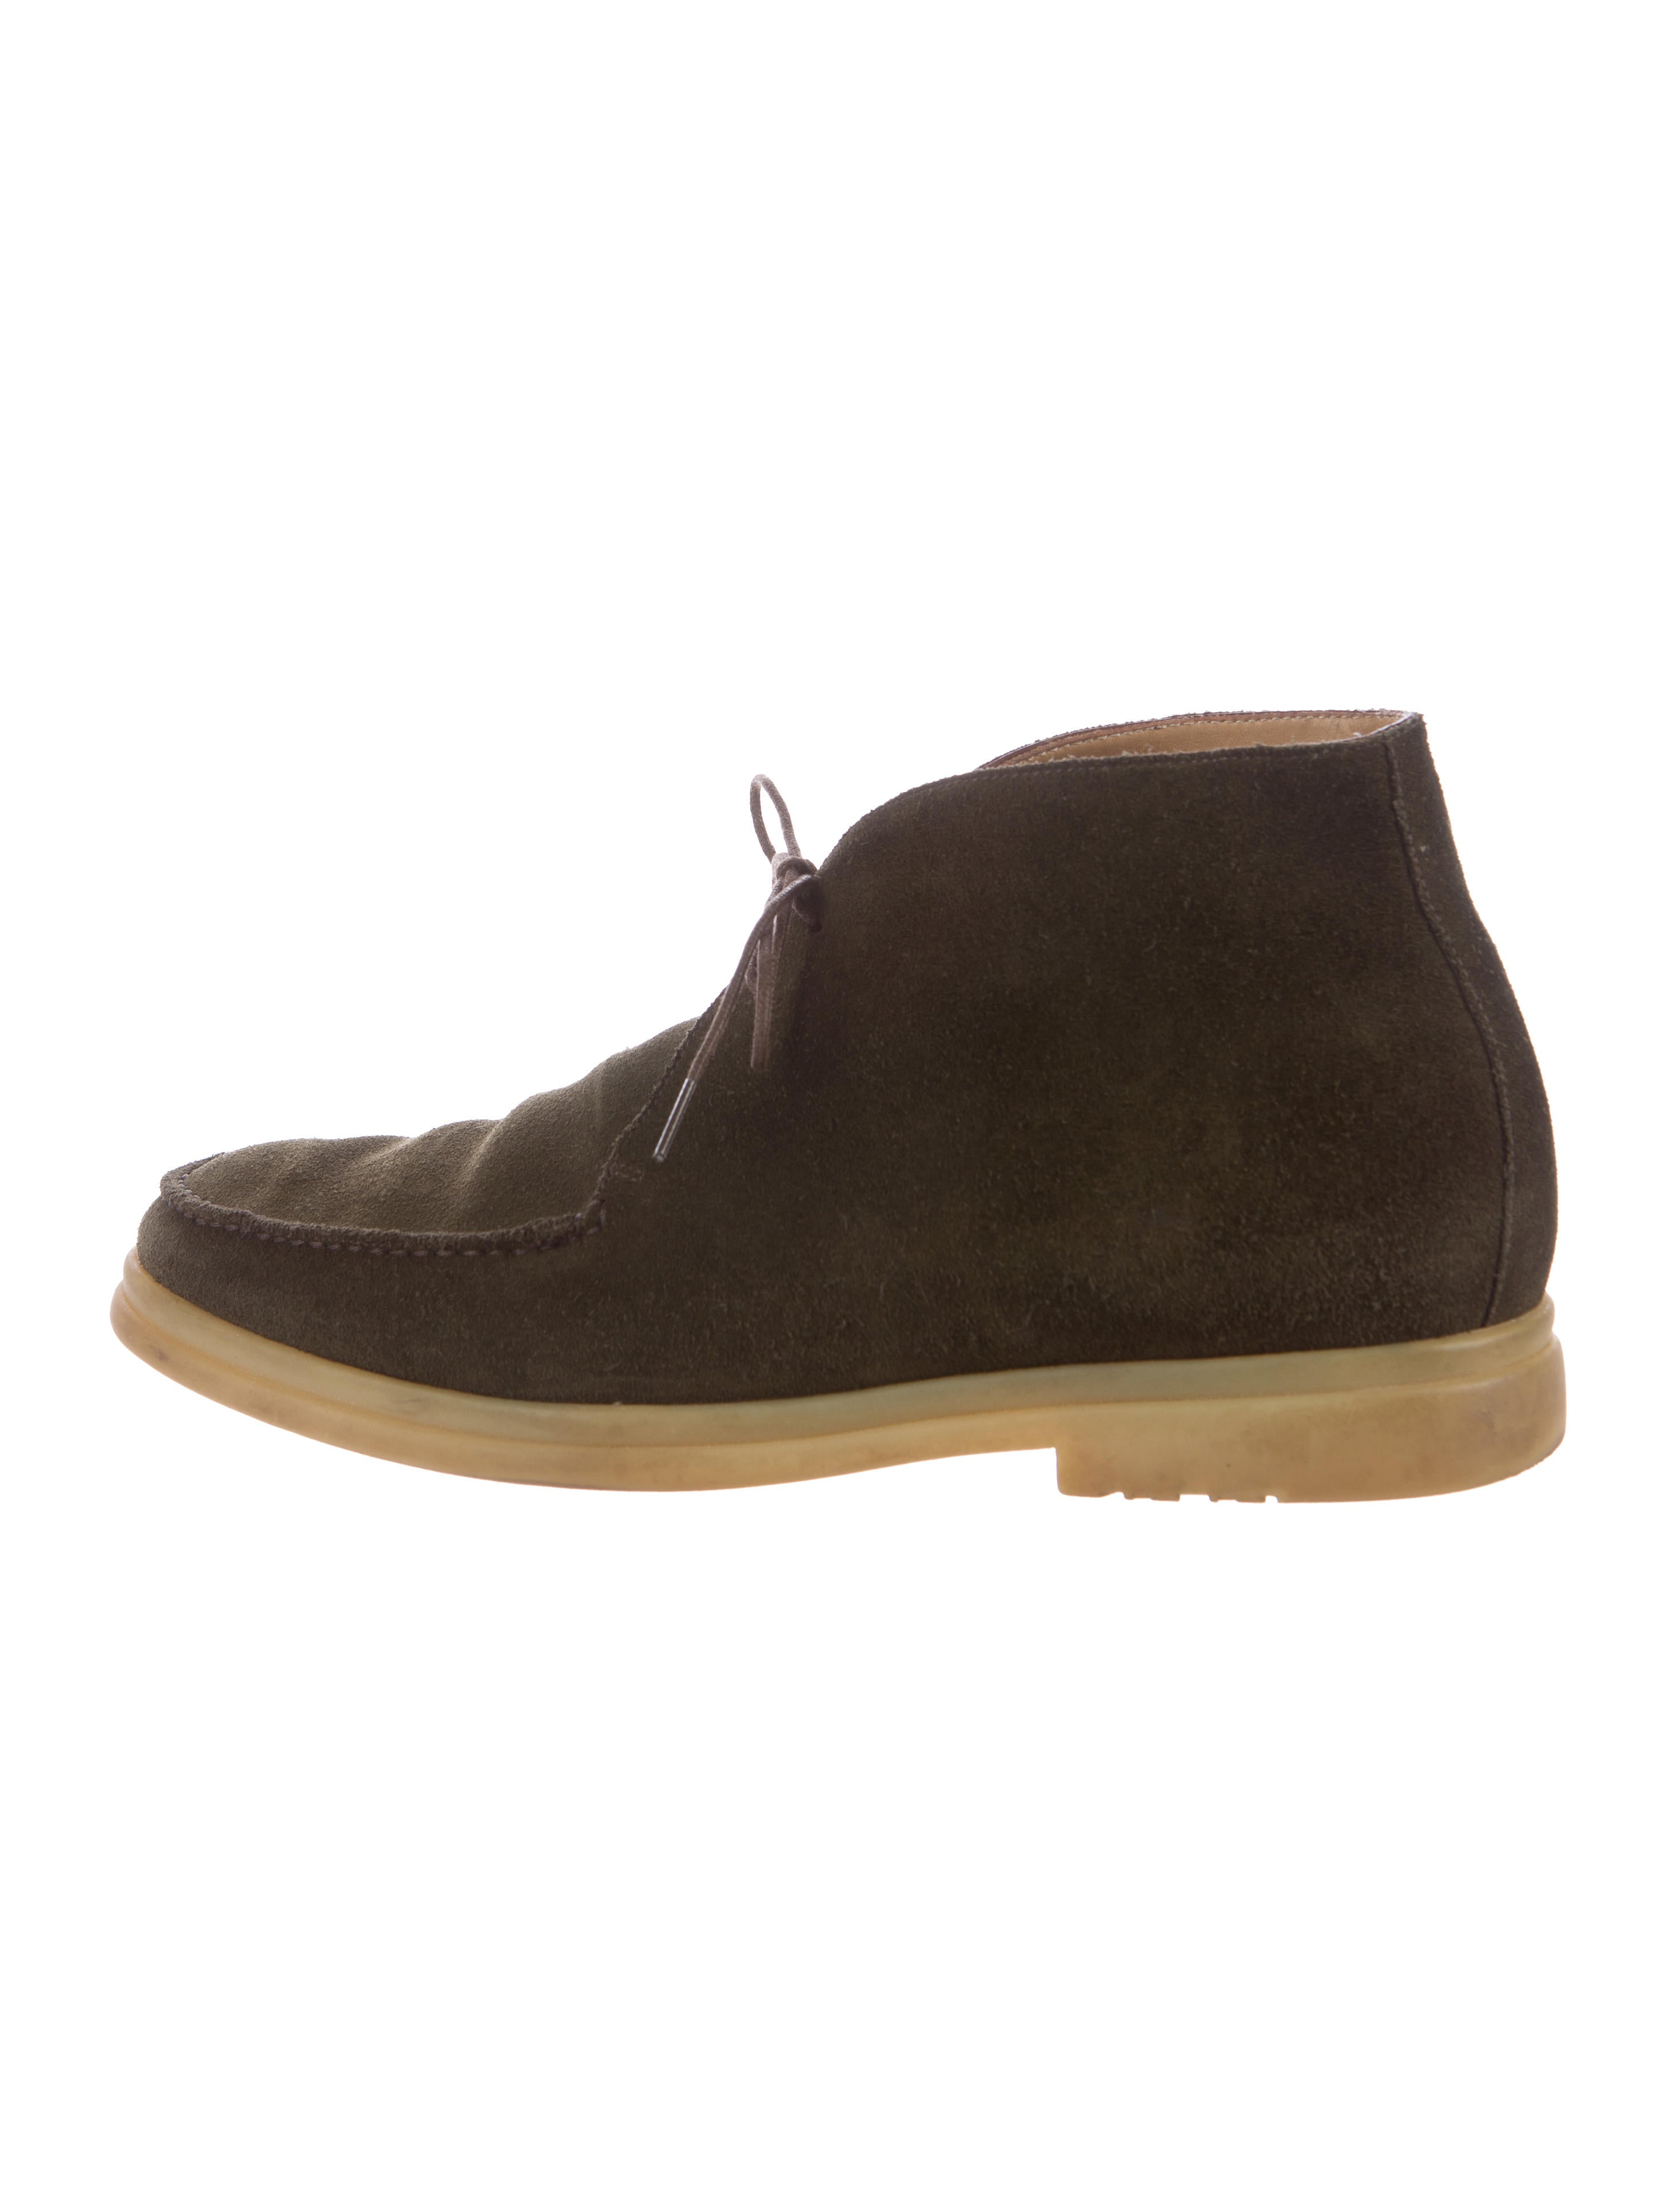 loro piana suede desert boots shoes lor35678 the